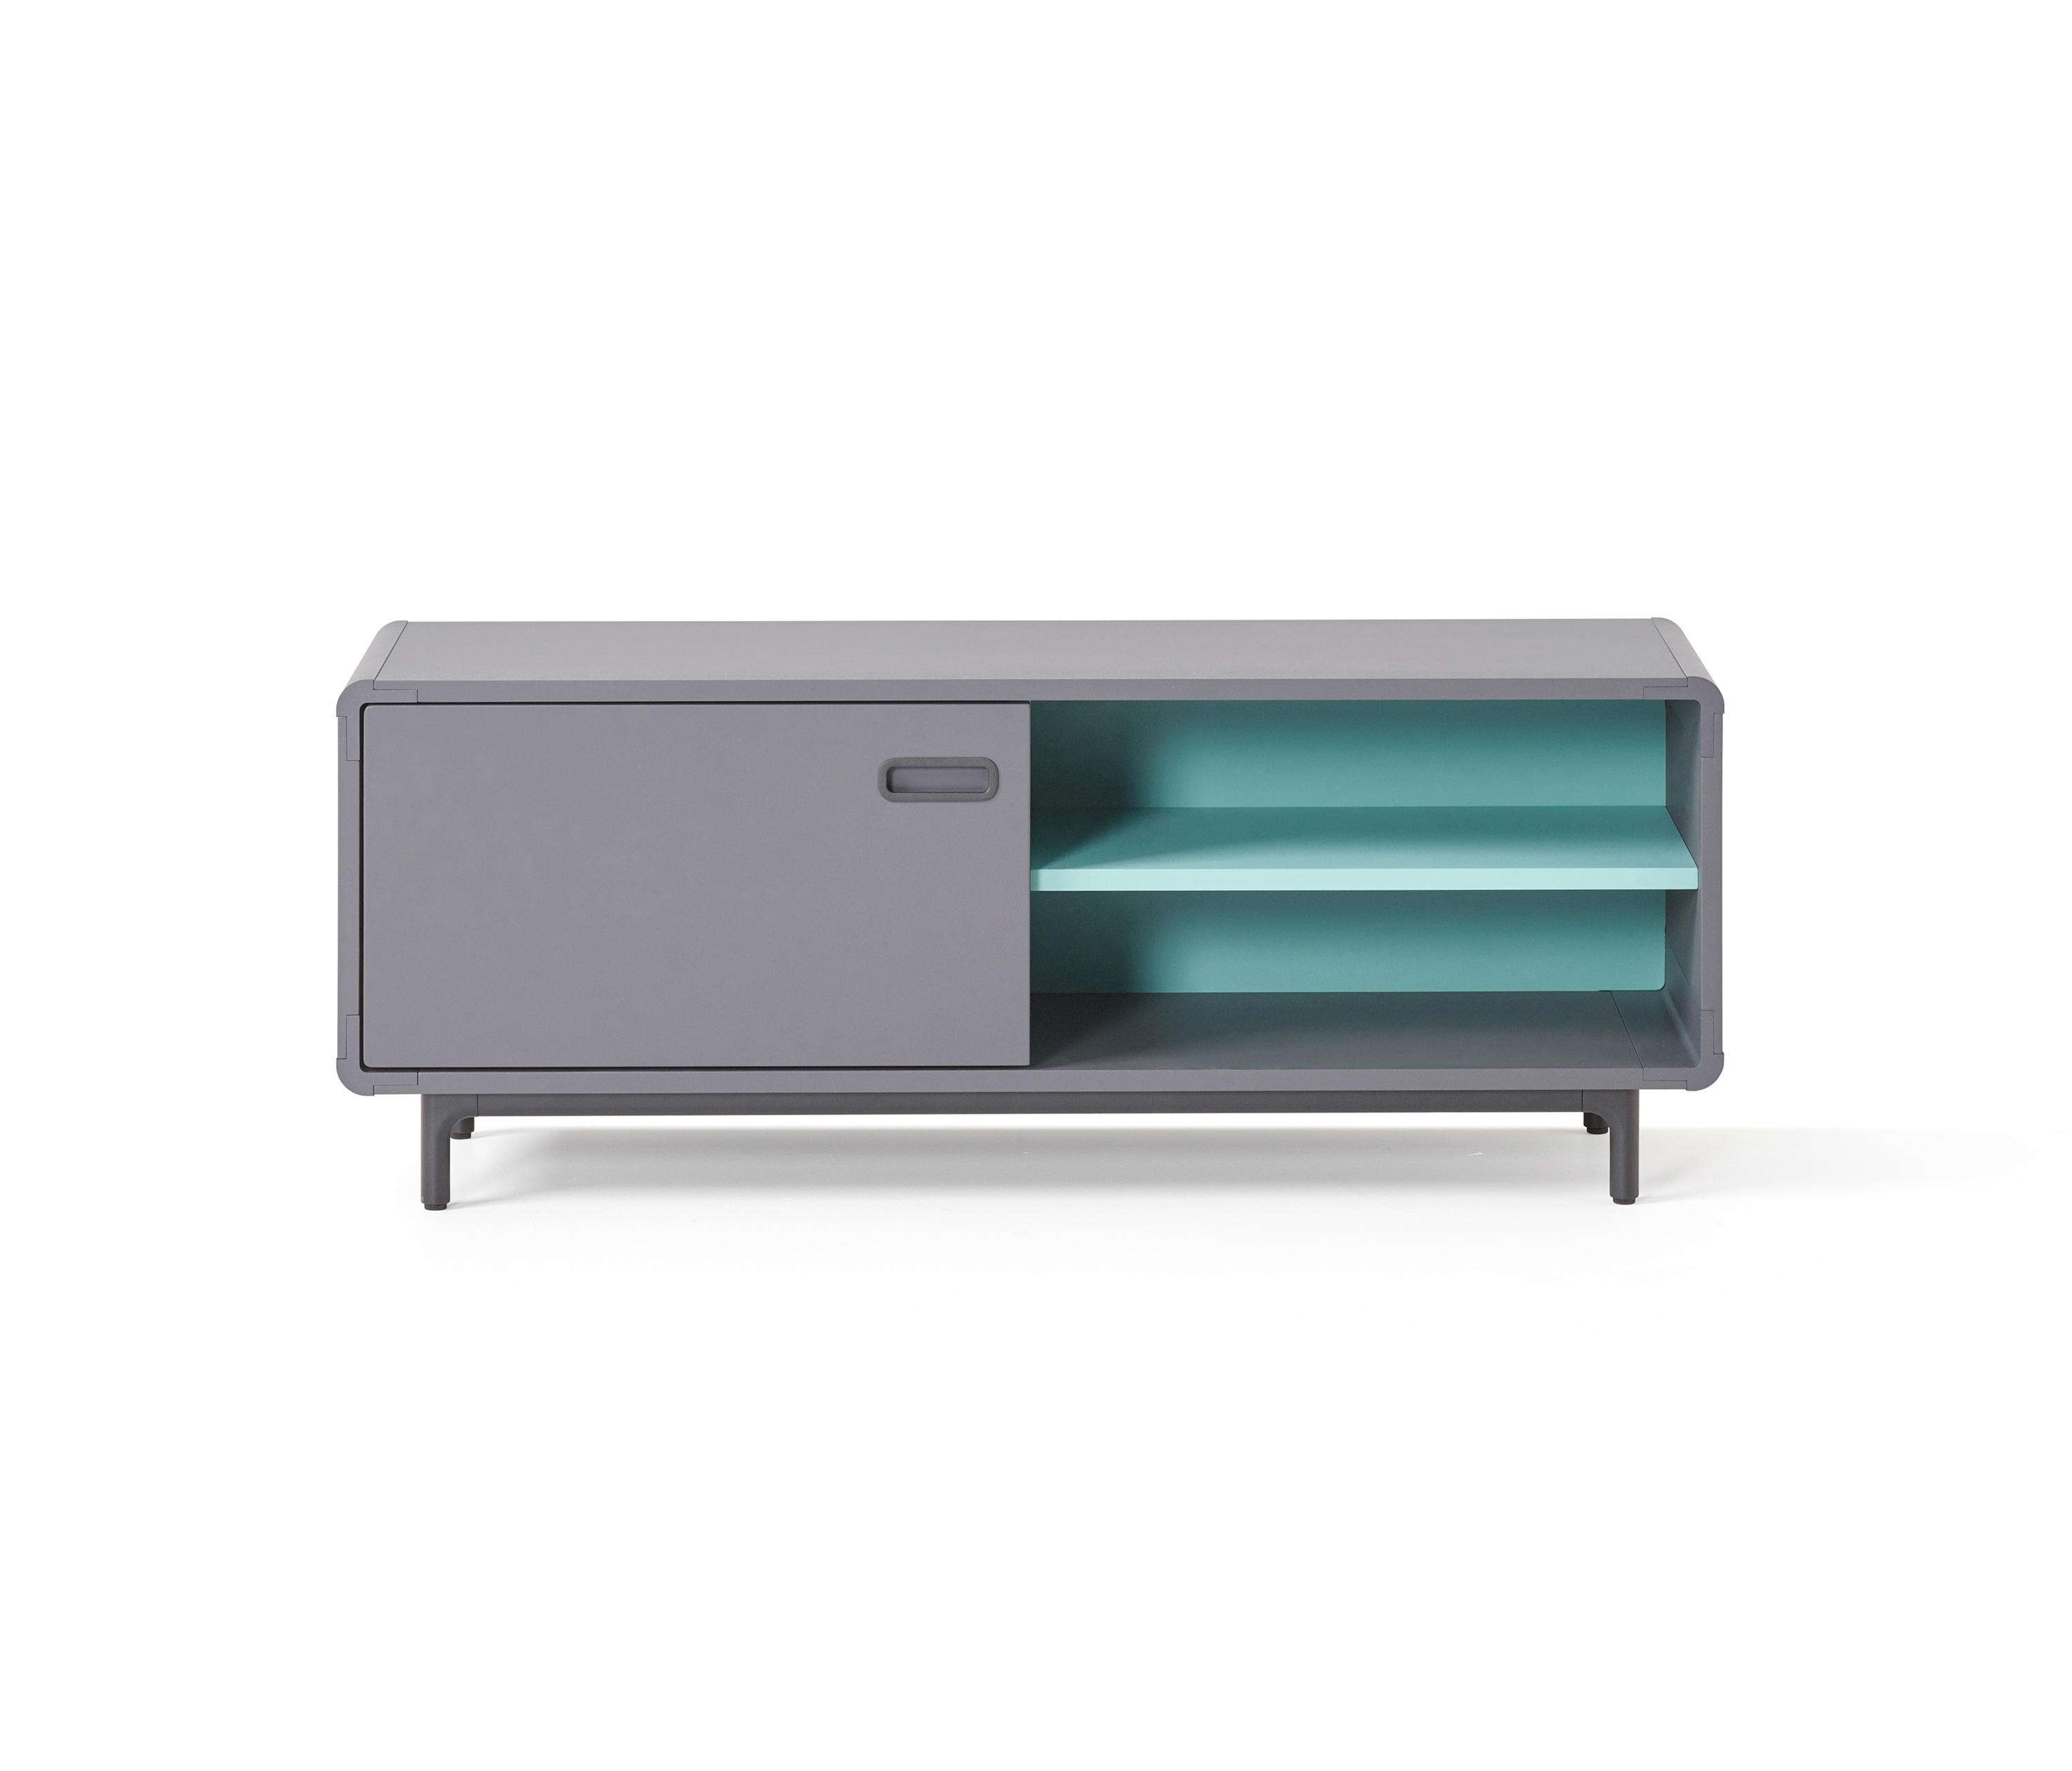 Extens | Dressoir Low – Sideboards From Artifort | Architonic Throughout Low Wooden Sideboards (Gallery 18 of 20)